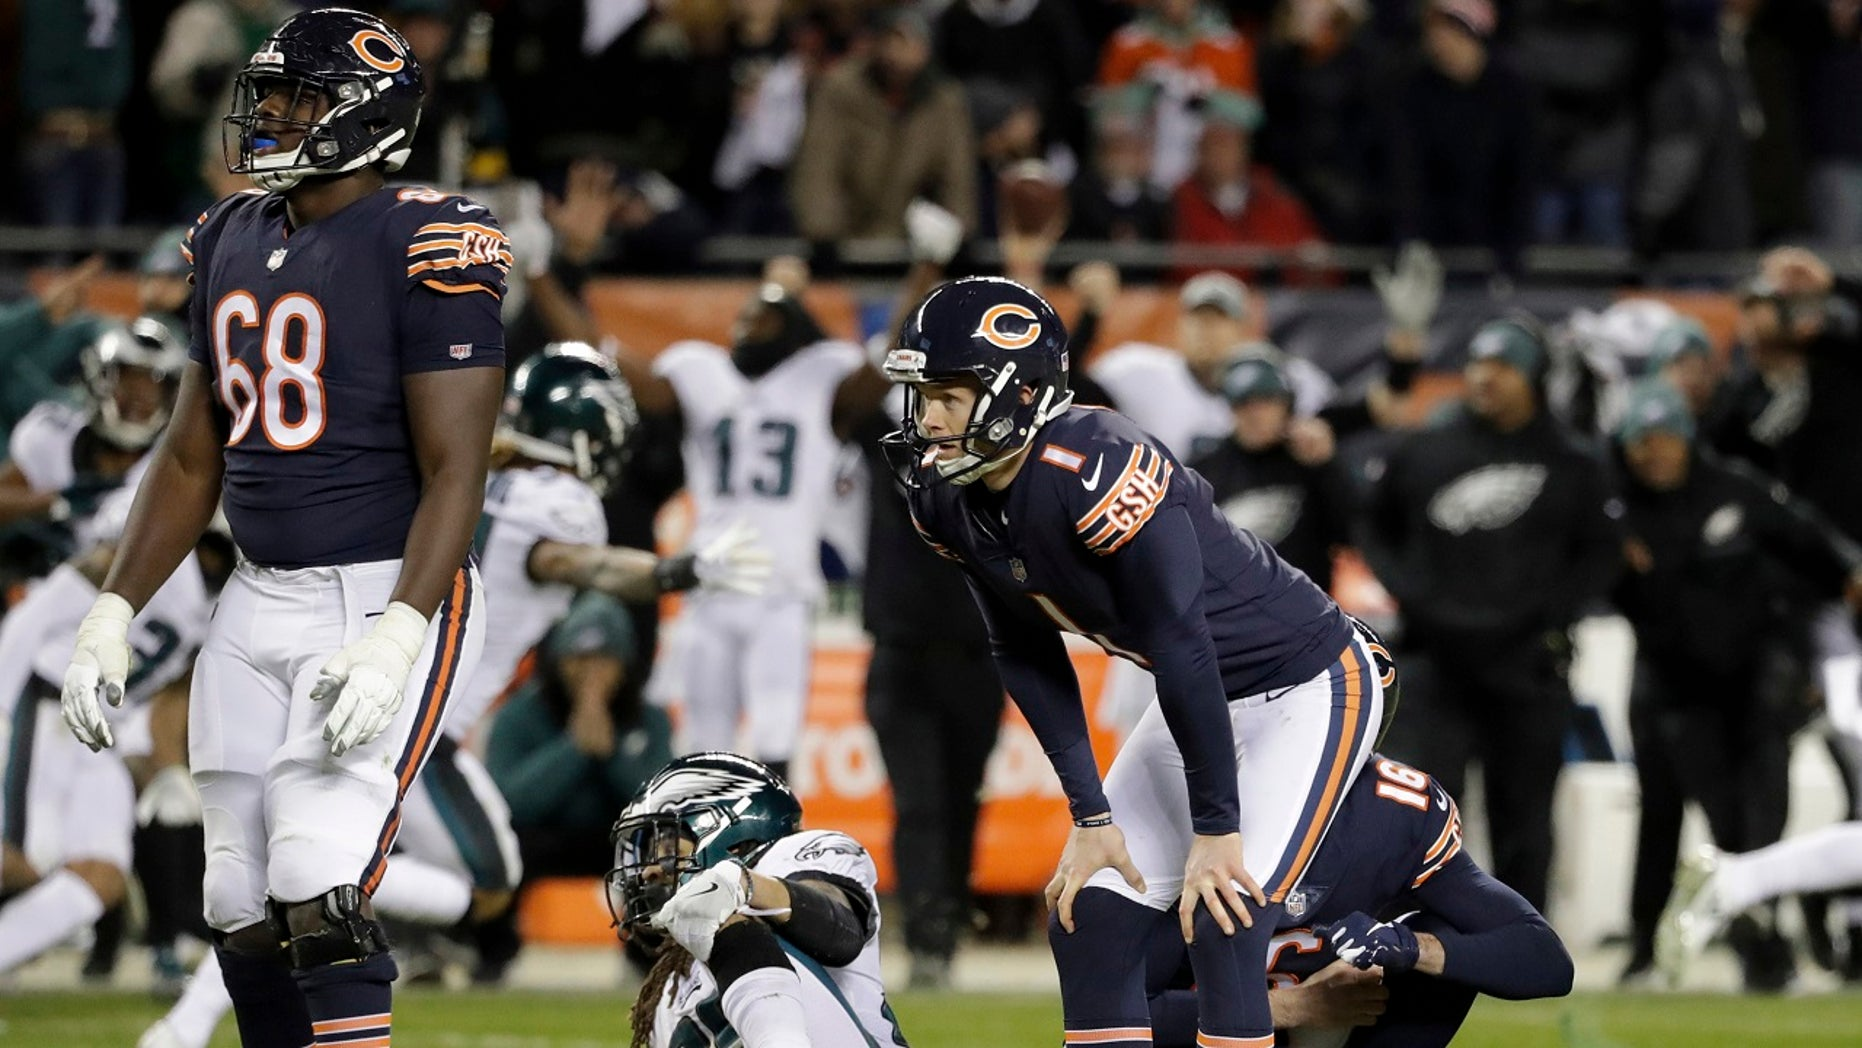 Chicago Bears kicker Cody Parkey (1) reacts after missing a field goal in the closing minute of the team's NFL wild-card playoff loss to the Philadelphia Eagles in Chicago, Jan. 6, 2019. (Associated Press)